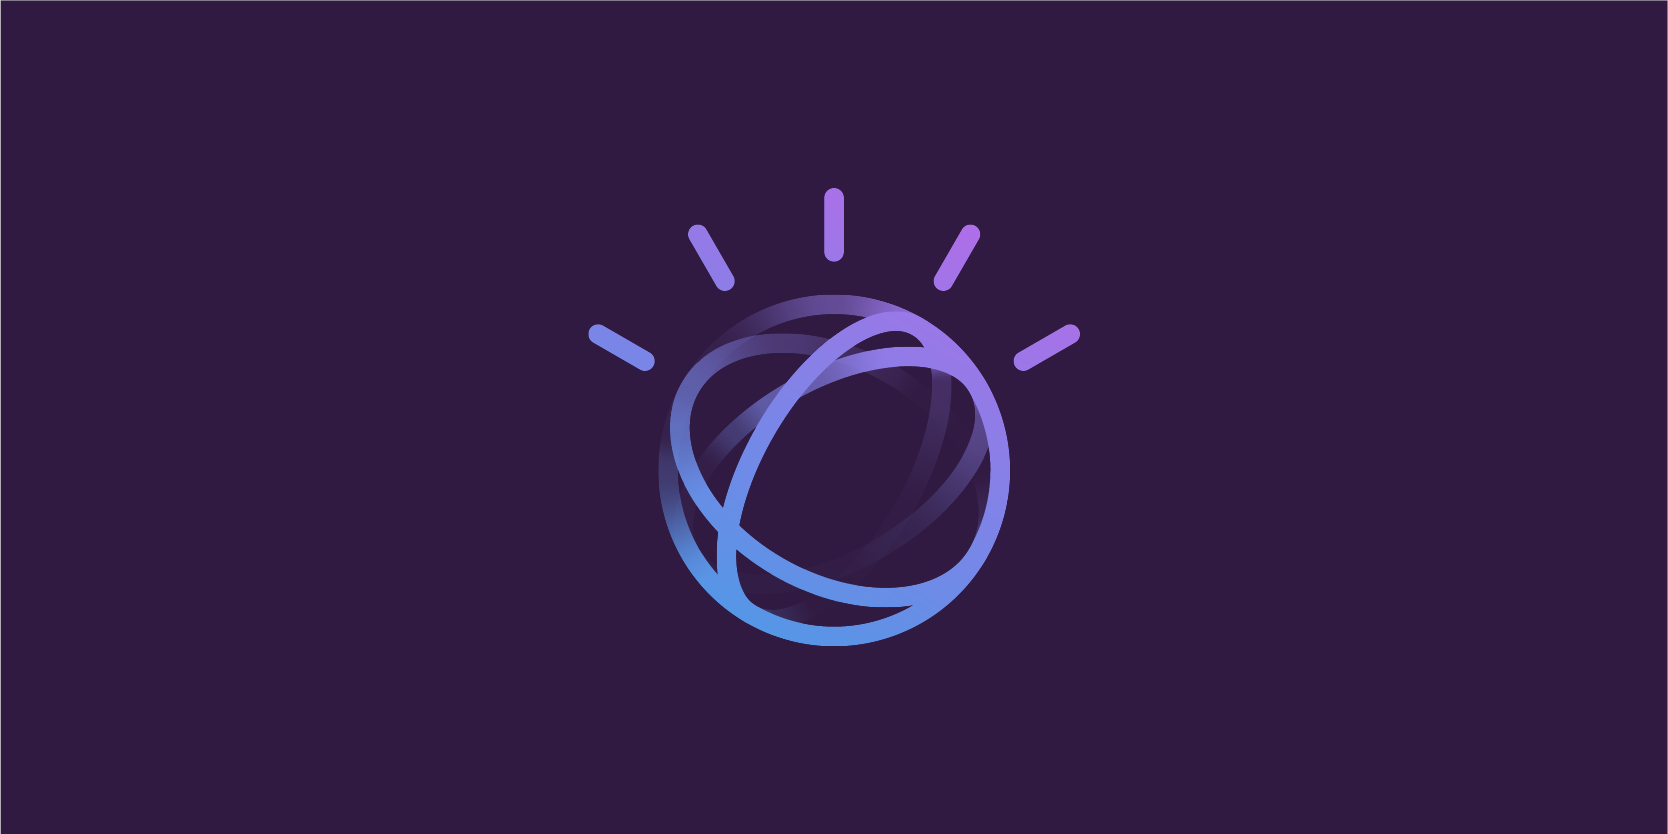 Updates To Watson Visual Recognition